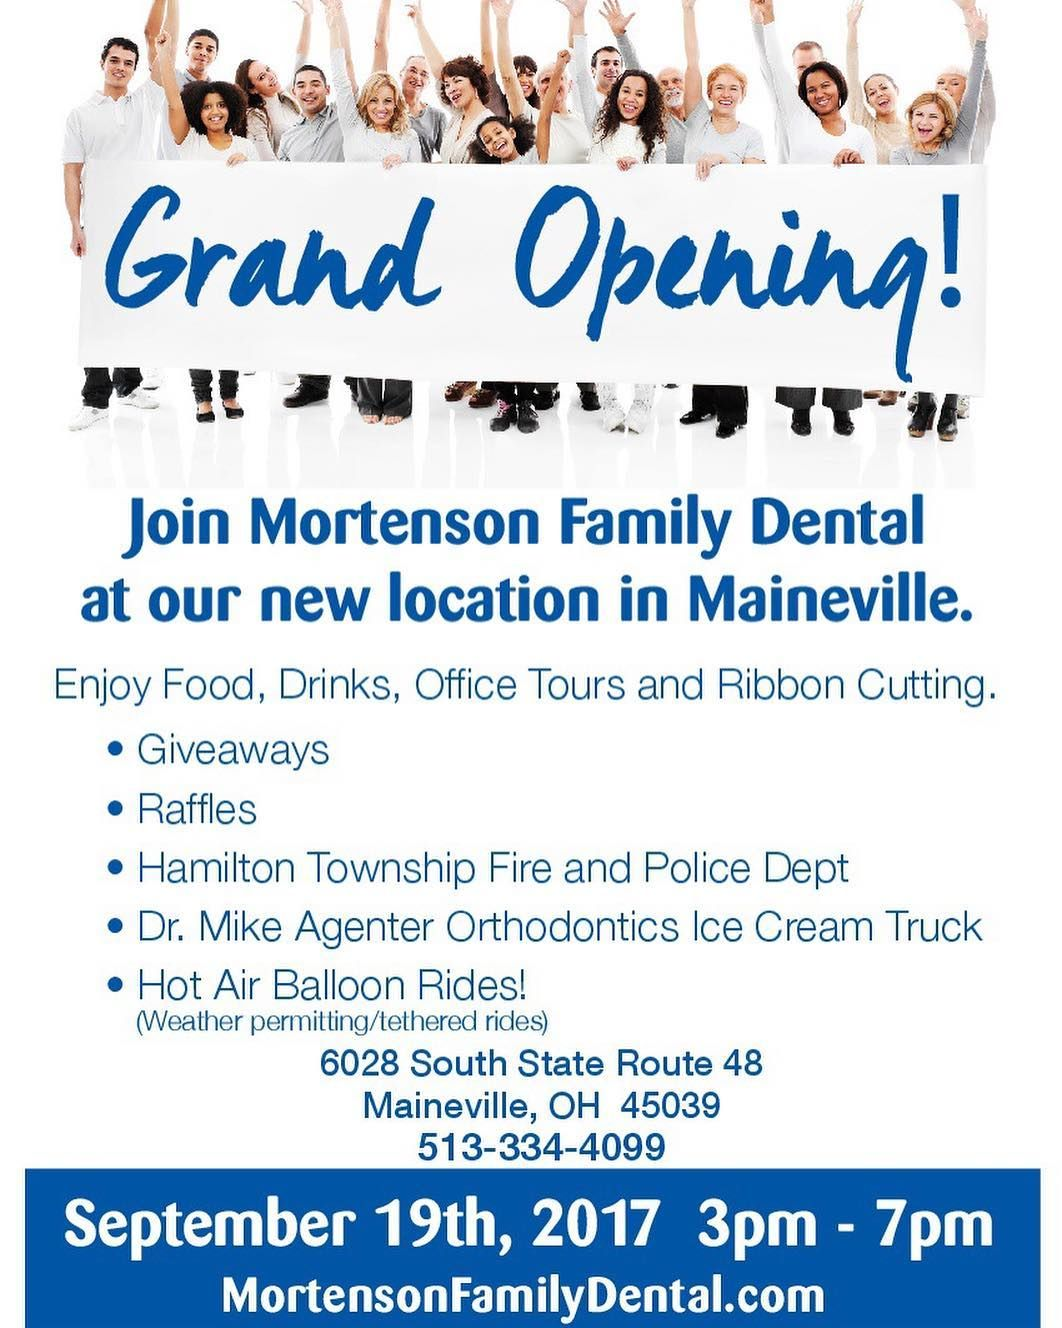 We Hope To See You On September 18th For Our Grand Opening